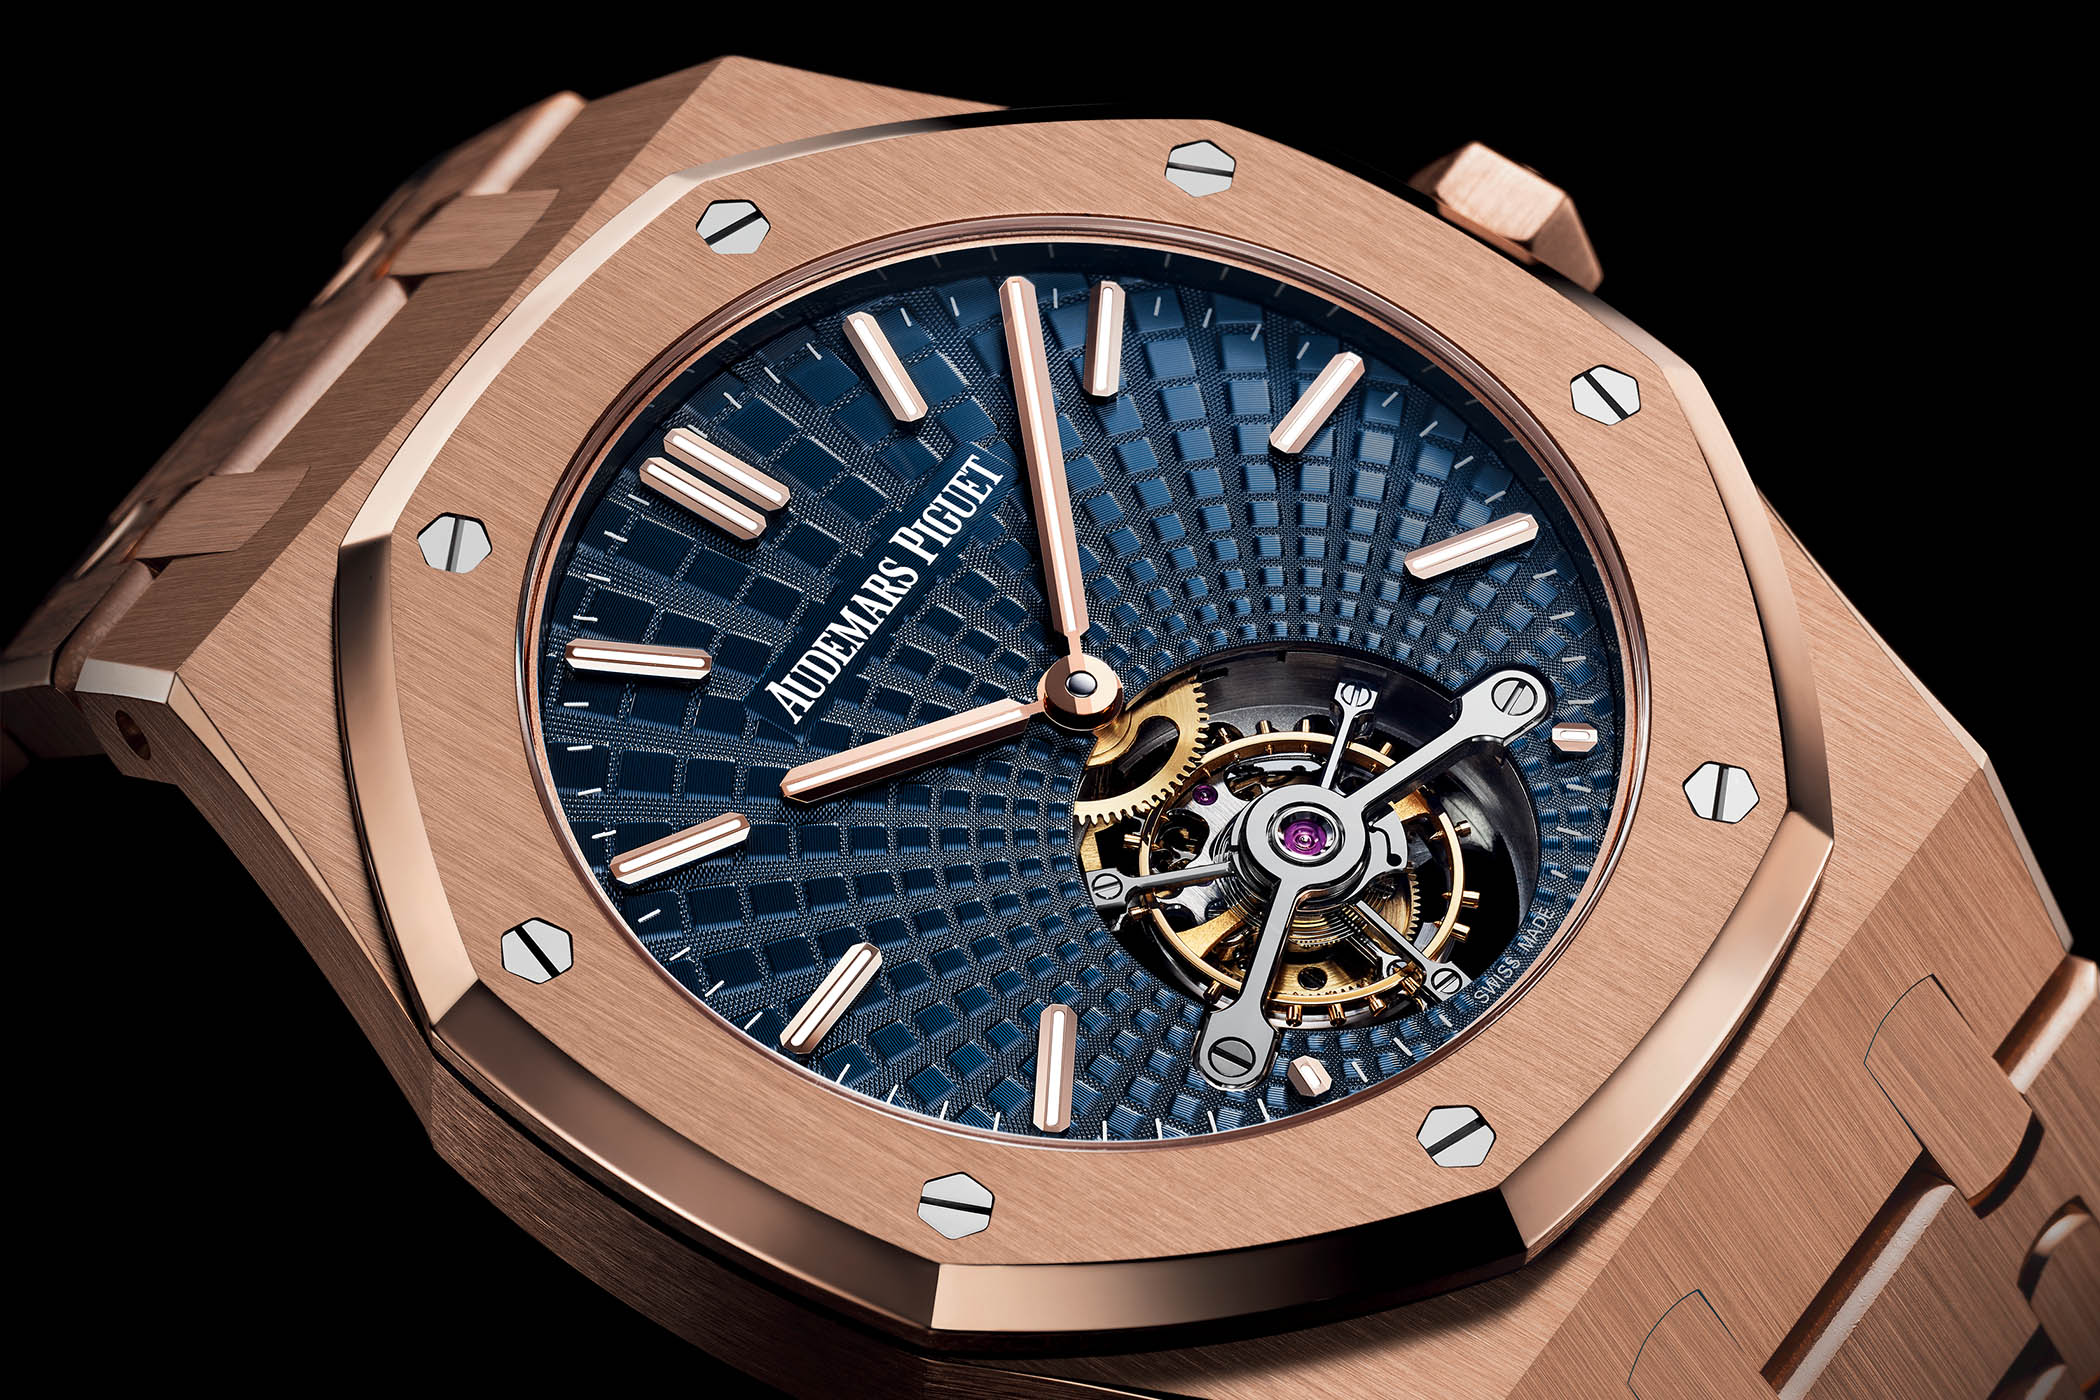 Audemars Piguet Royal Oak Extra-Thin Tourbillon Tapisserie Evolutive 26522 - SIHH 2018